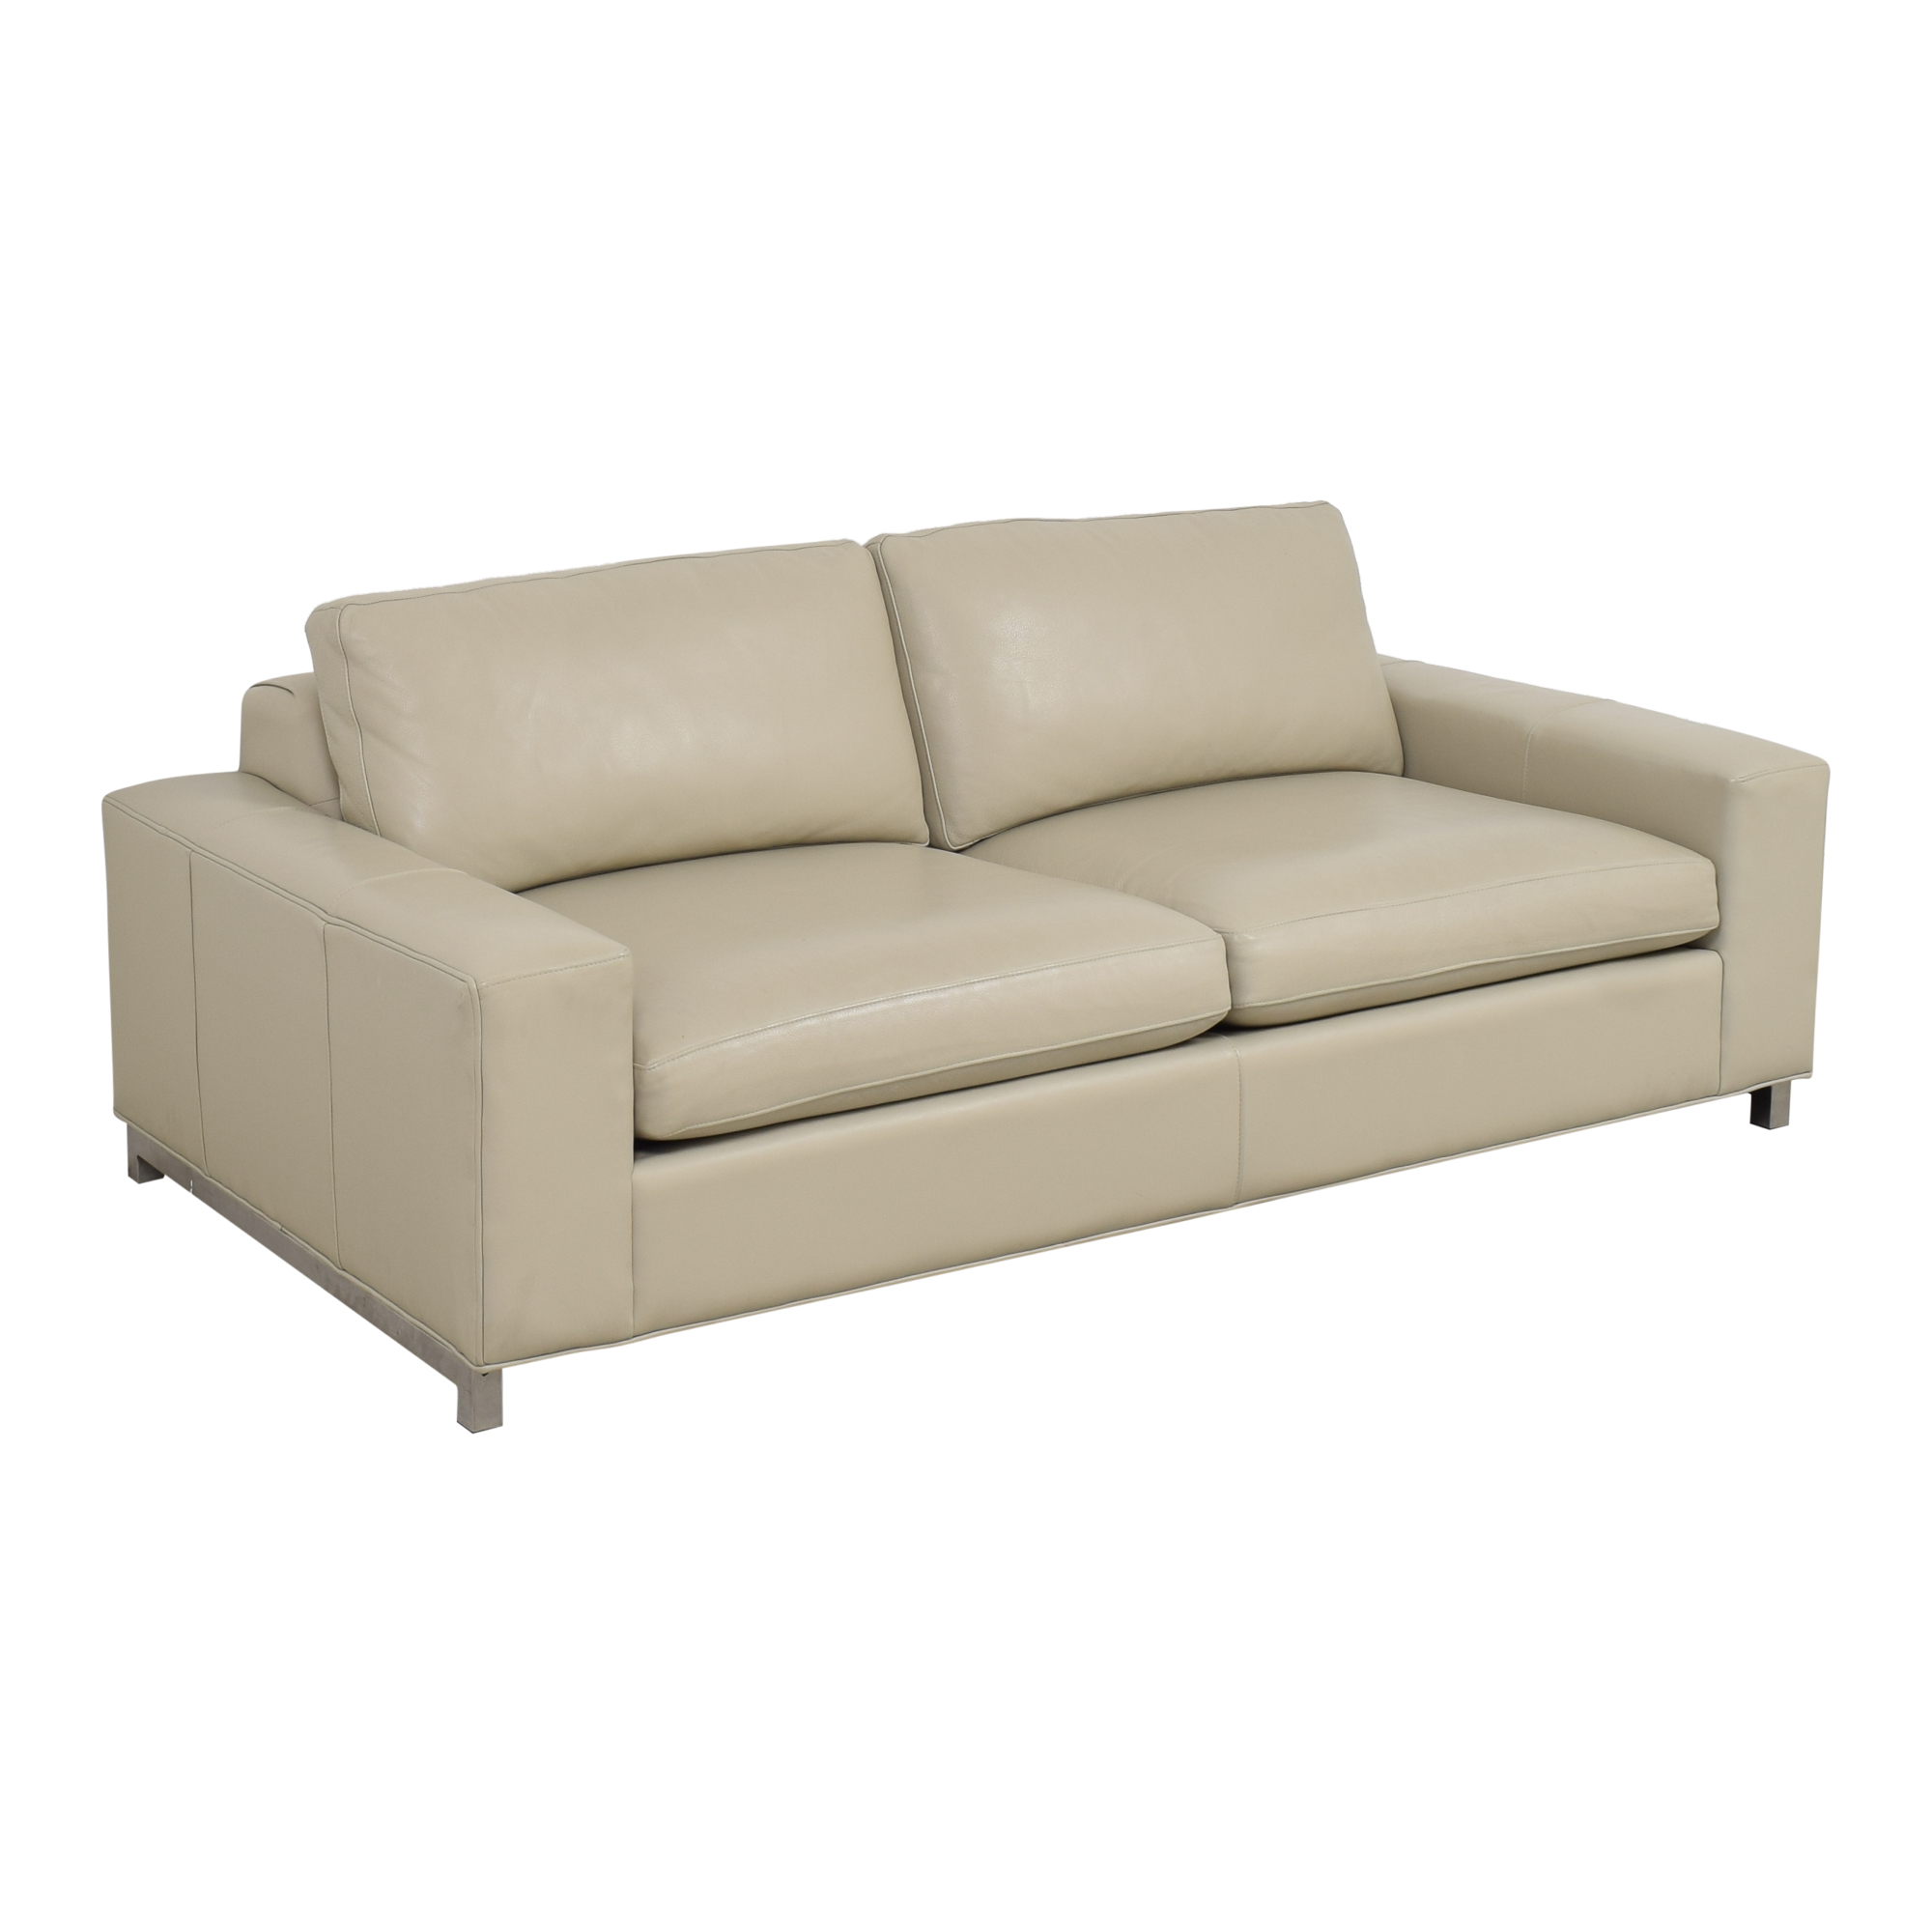 shop Room & Board Klein Sofa Room & Board Classic Sofas